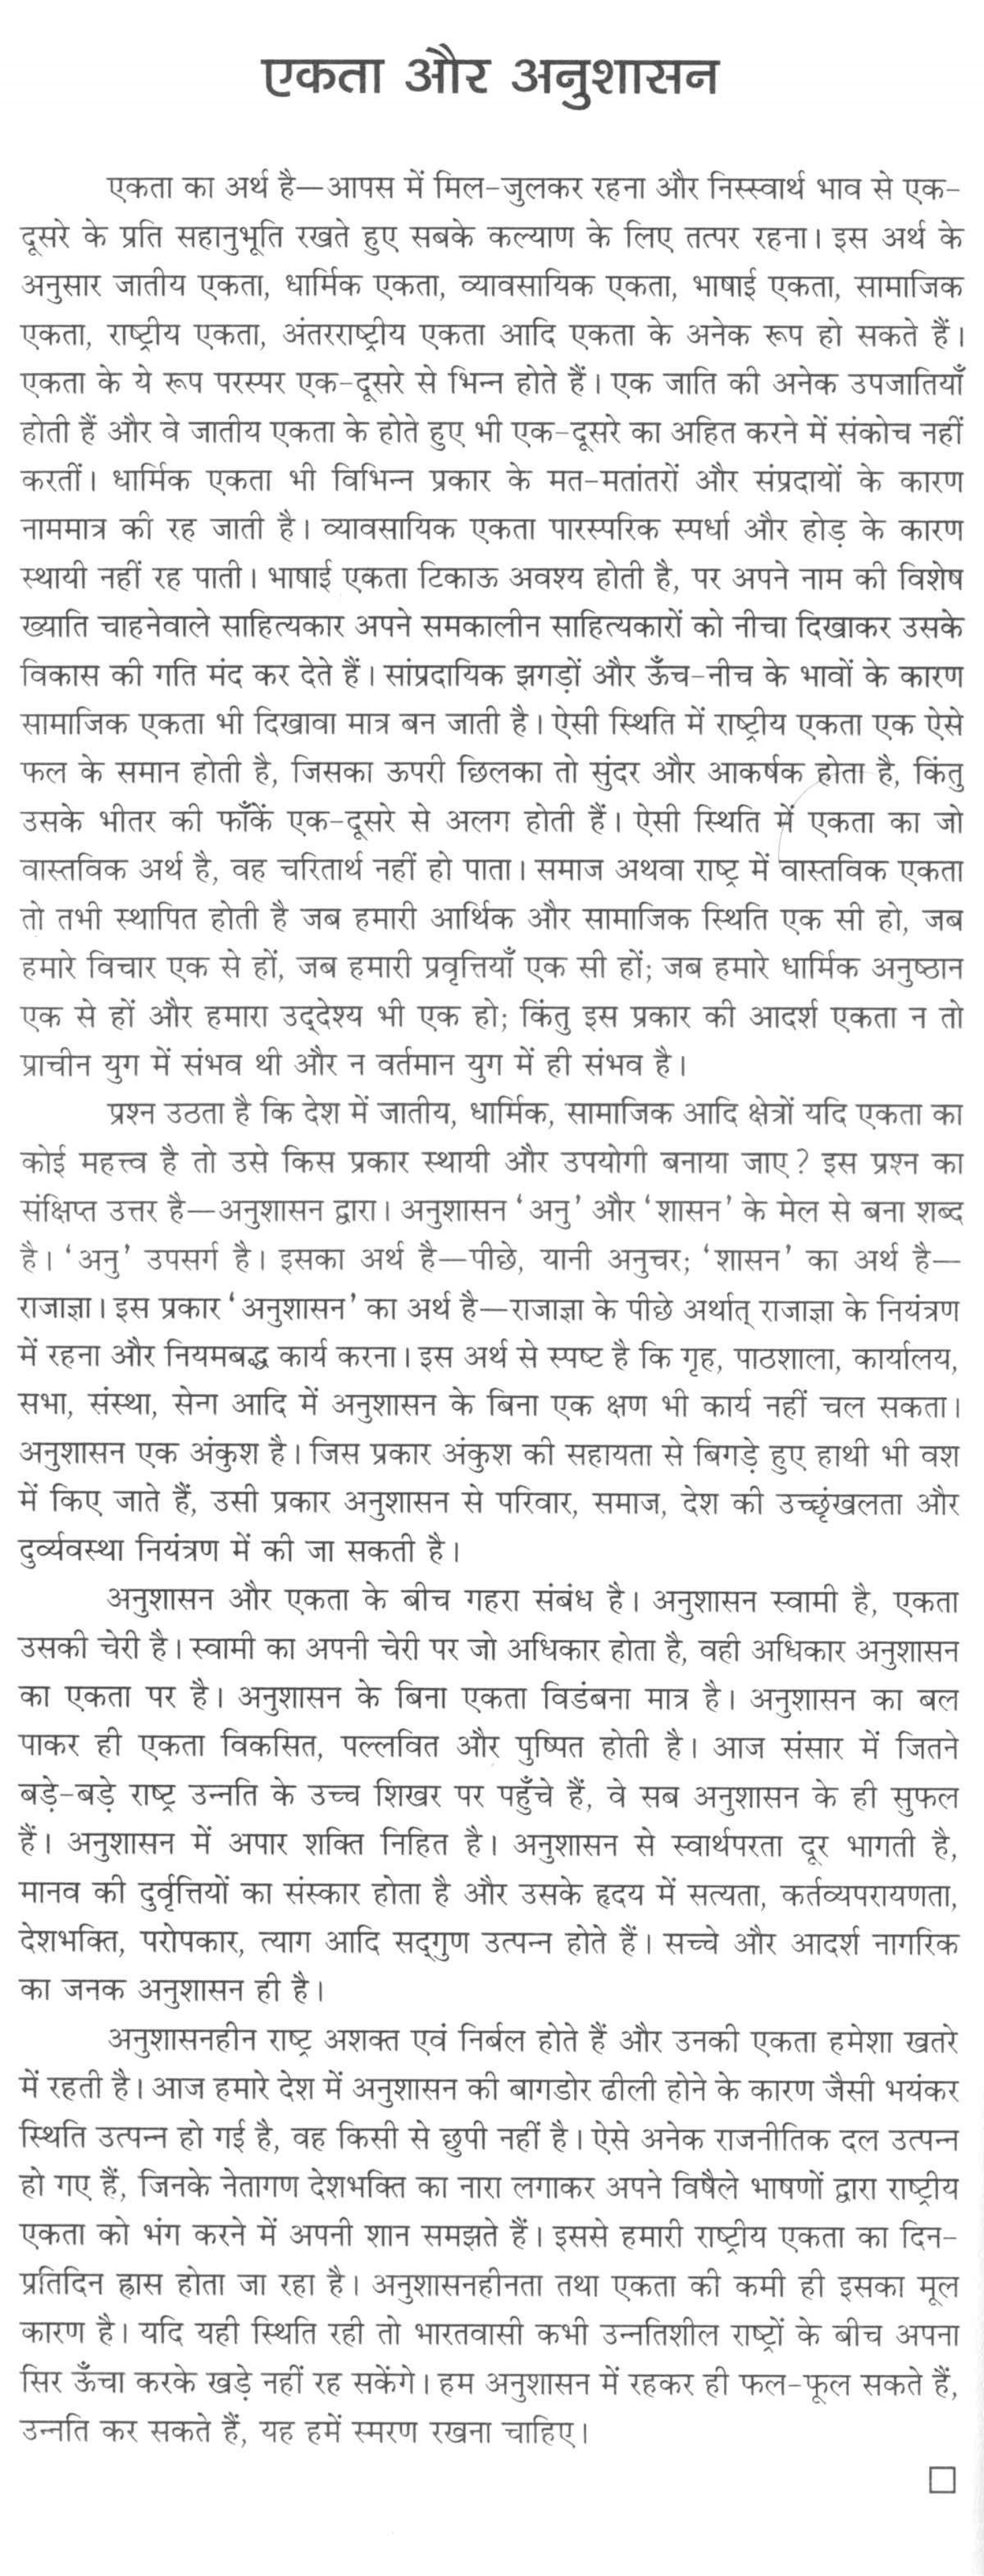 006 Essay Example Best Solutions Of On Unity In Diversity Gxart Stunning Culture India Fascinating Hindi Hindu Muslim Statue Importance 1920